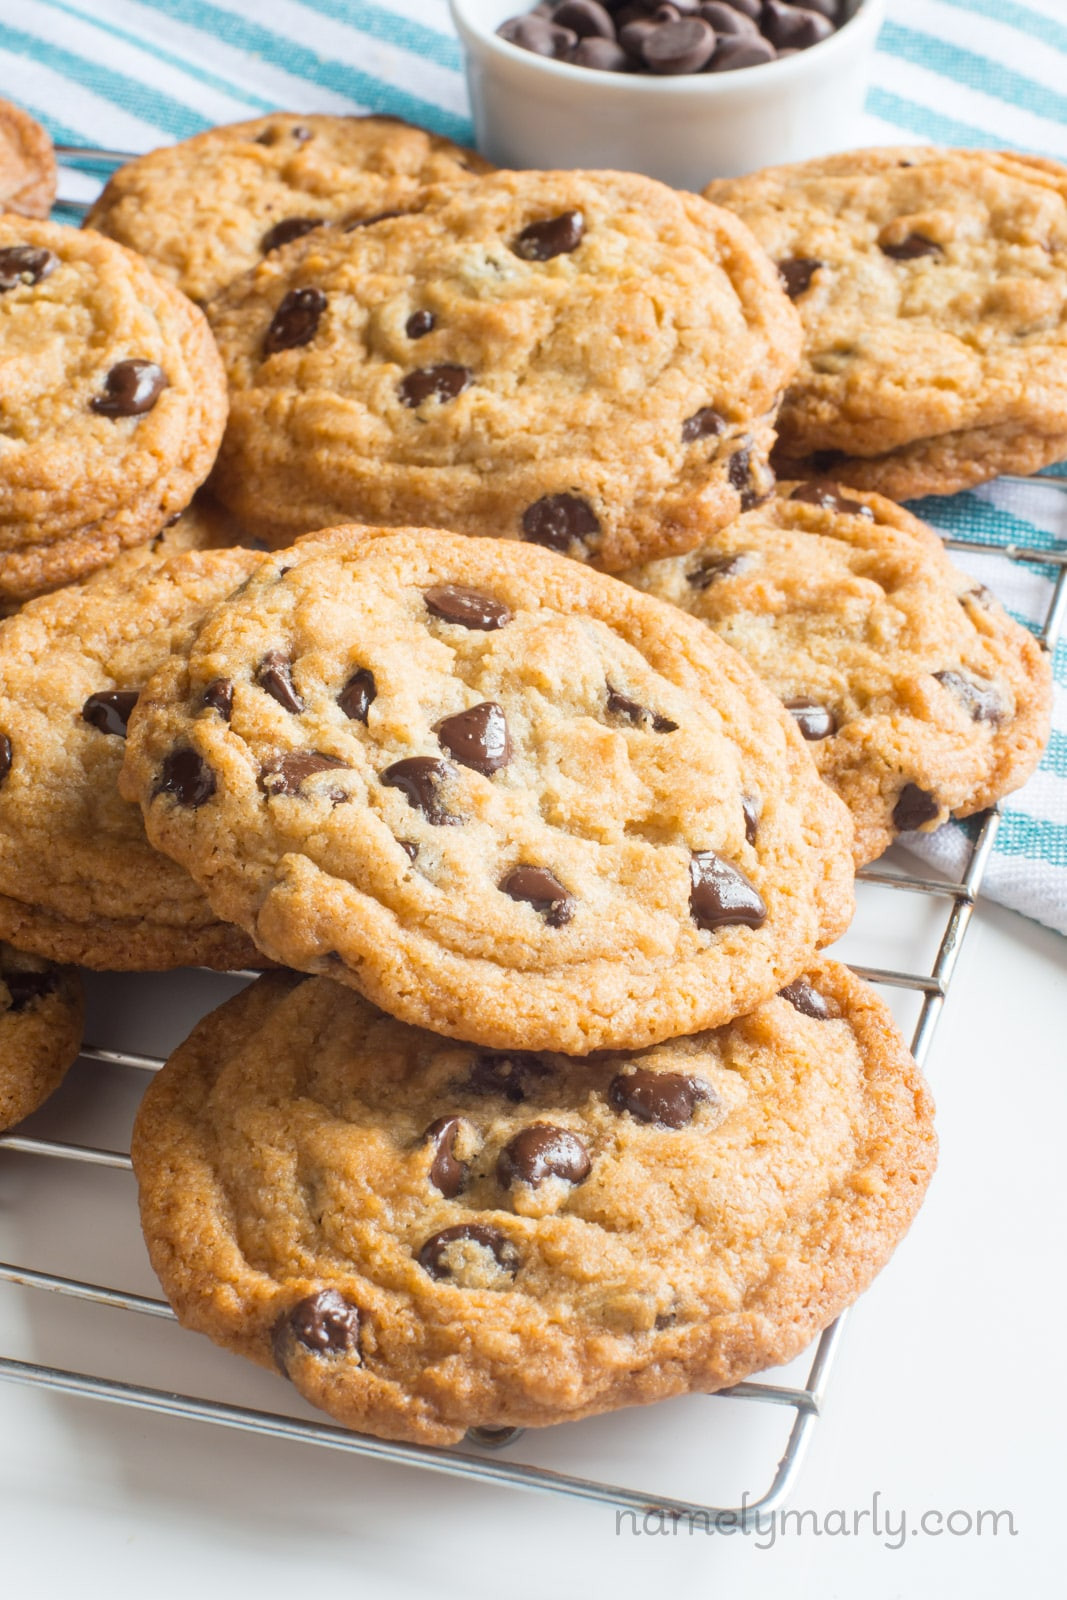 Coconut Chocolate Chip Cookies  Vegan Coconut Chocolate Chip Cookies Namely Marly